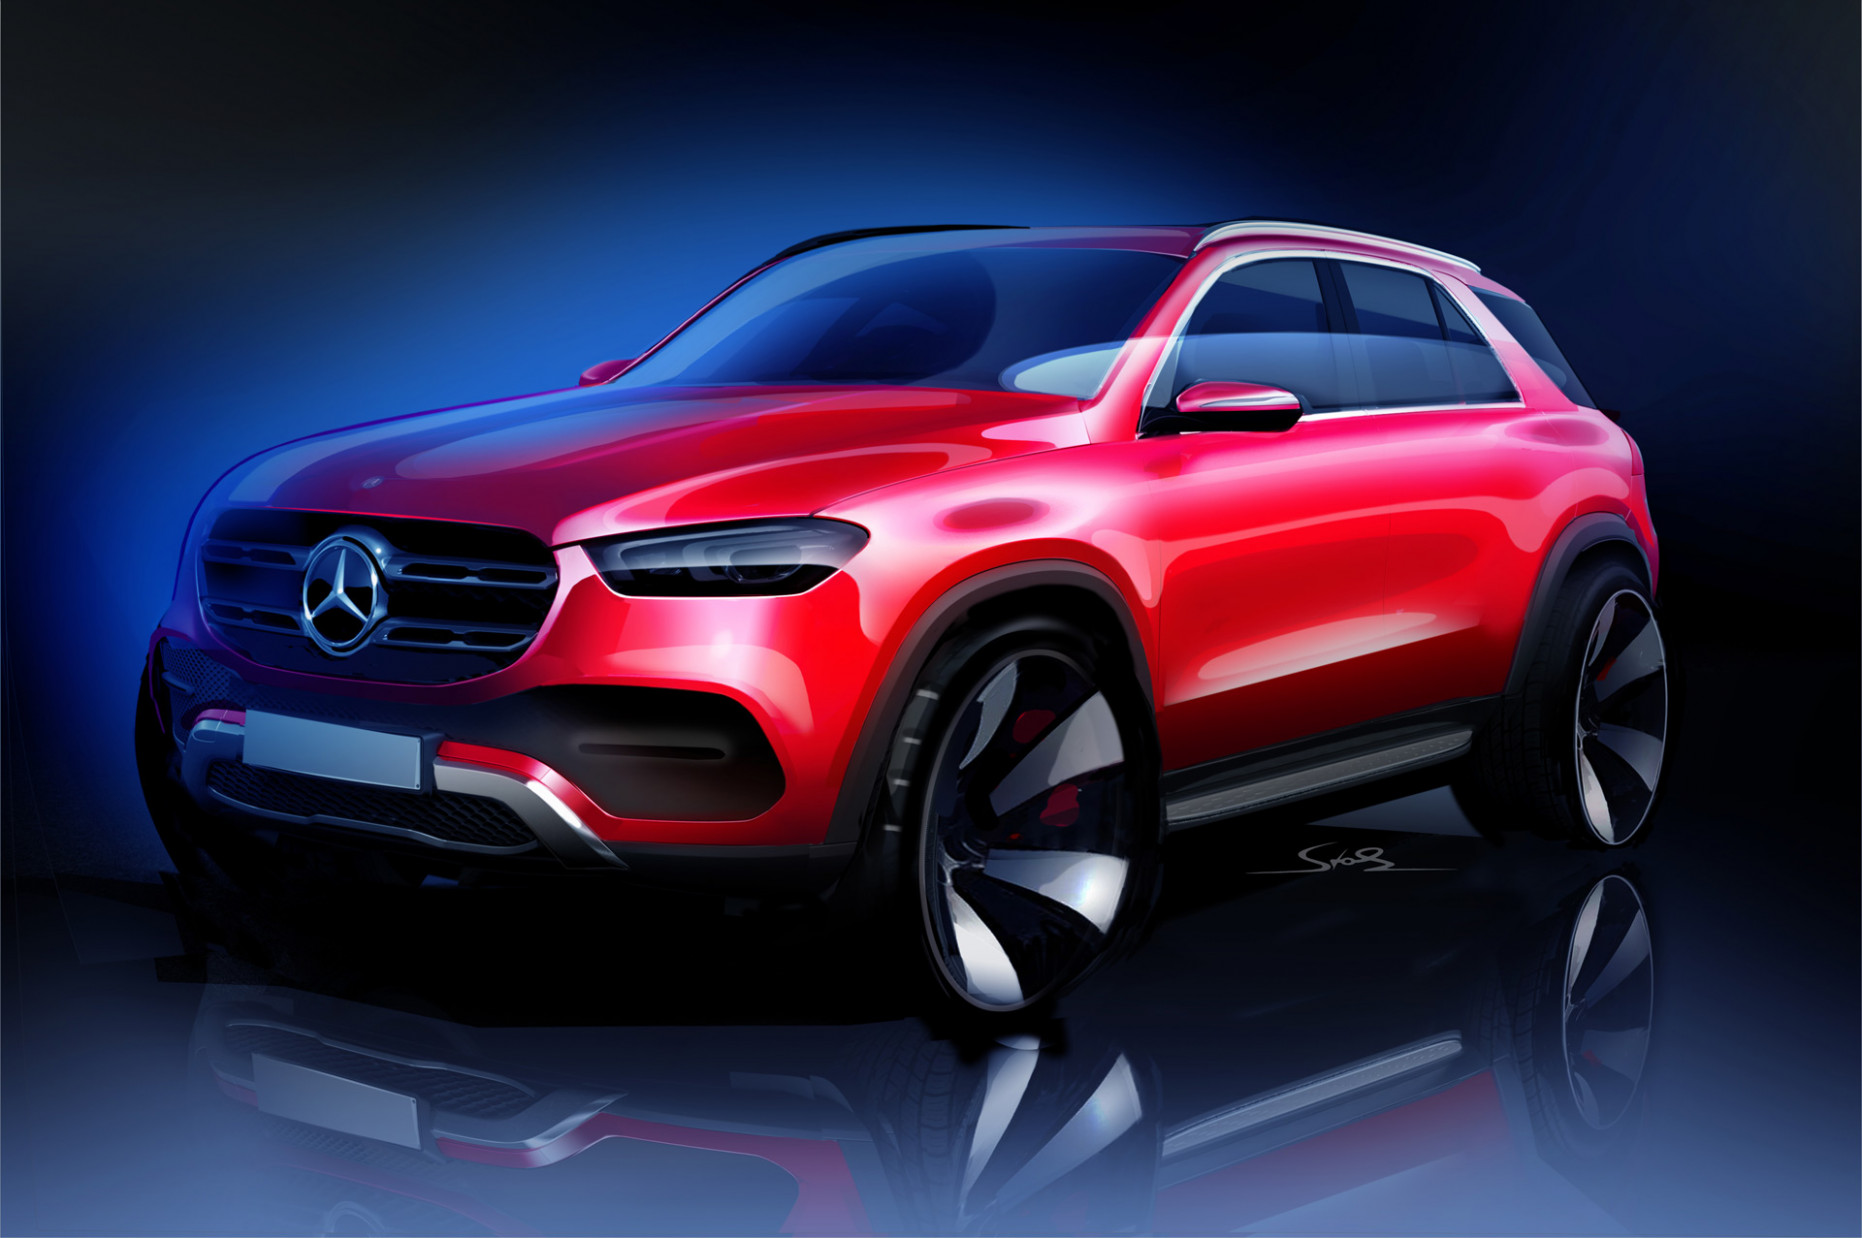 Mercedes-Benz teases 11 GLE luxury SUV